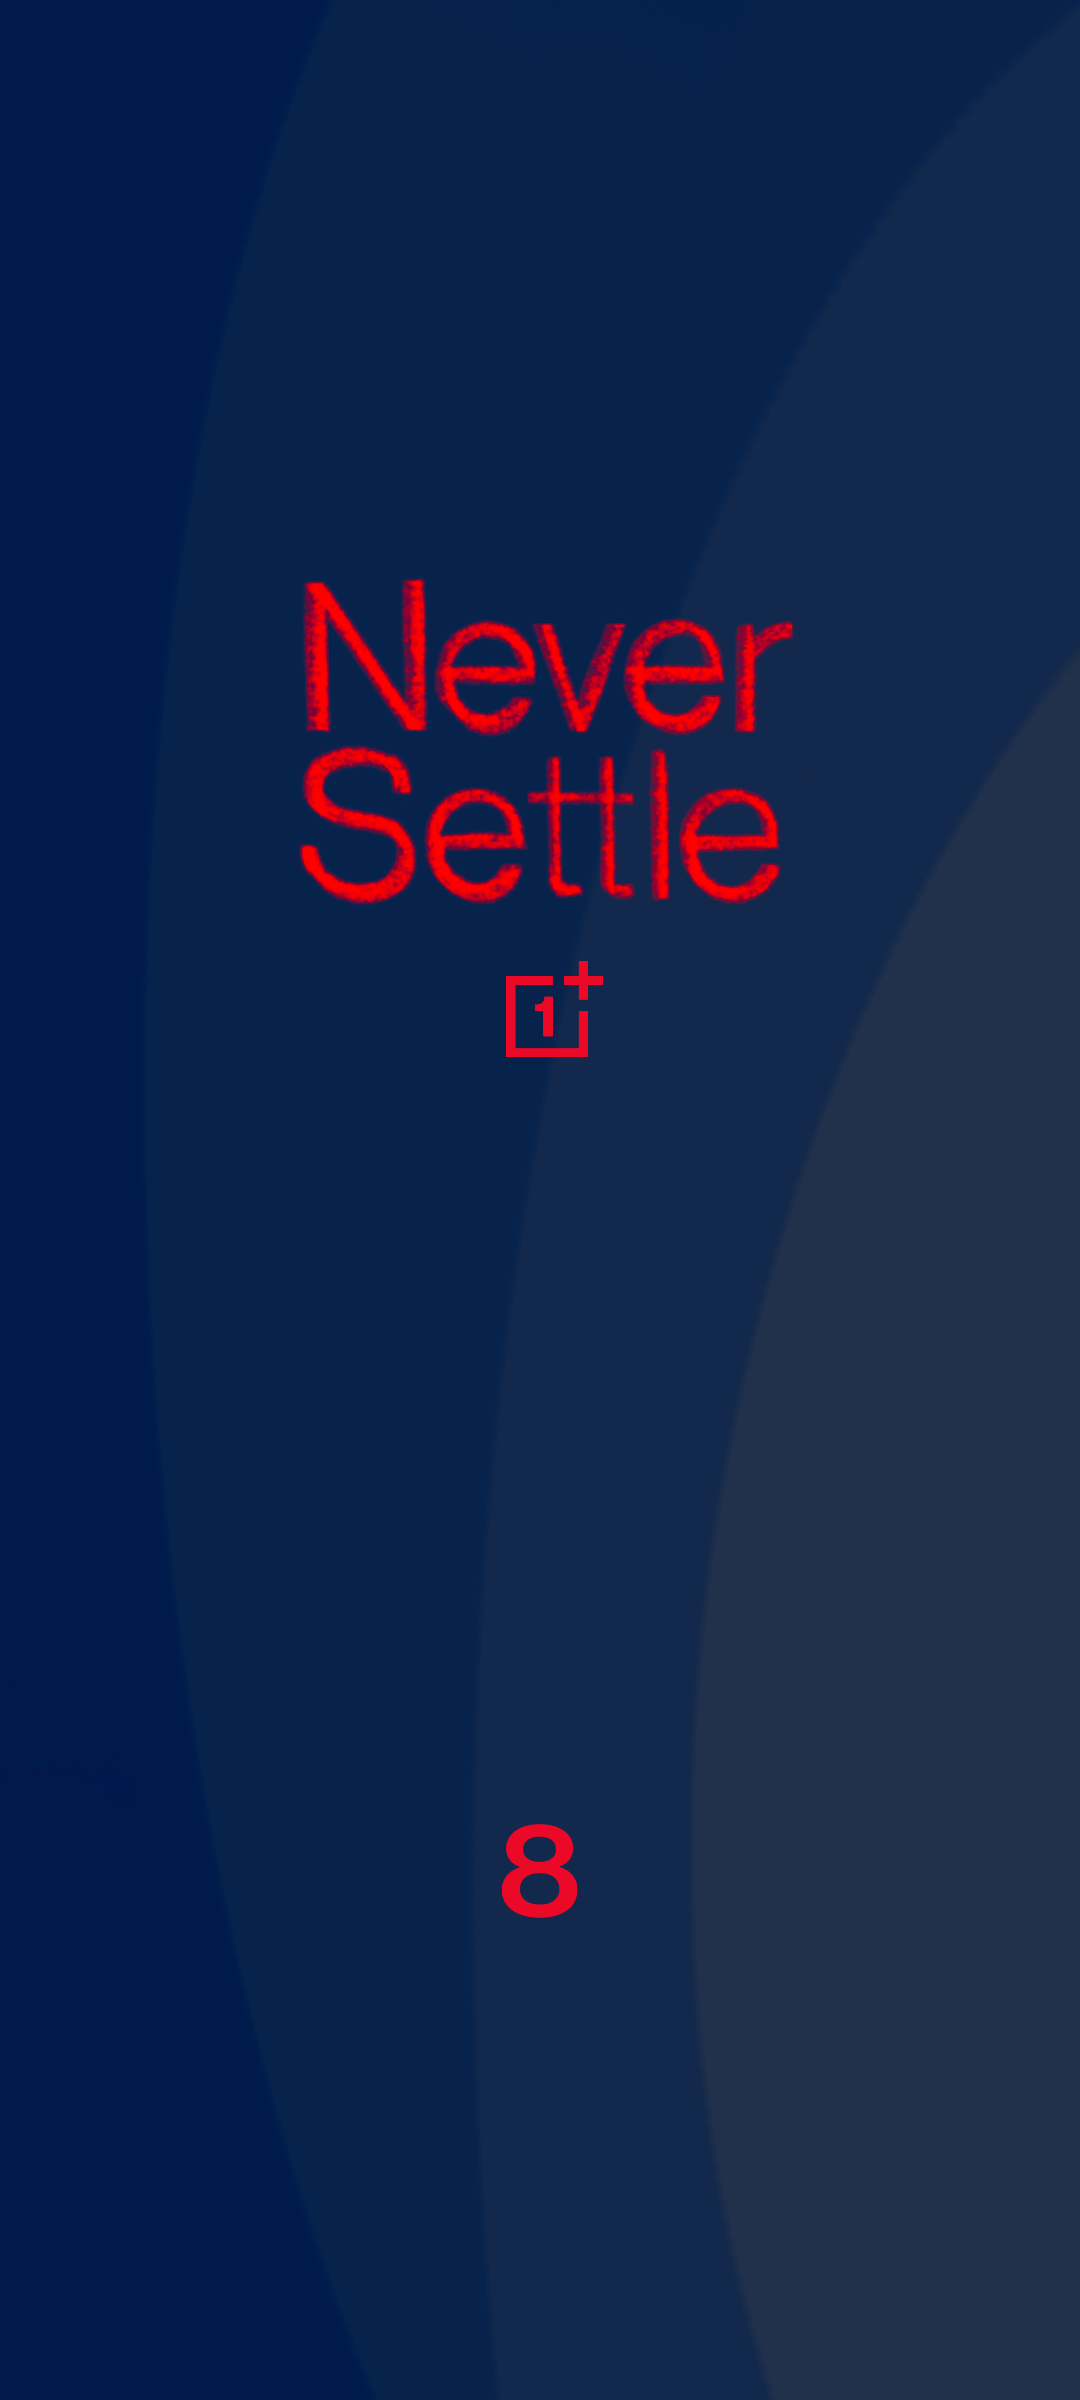 oneplus 8 design.png